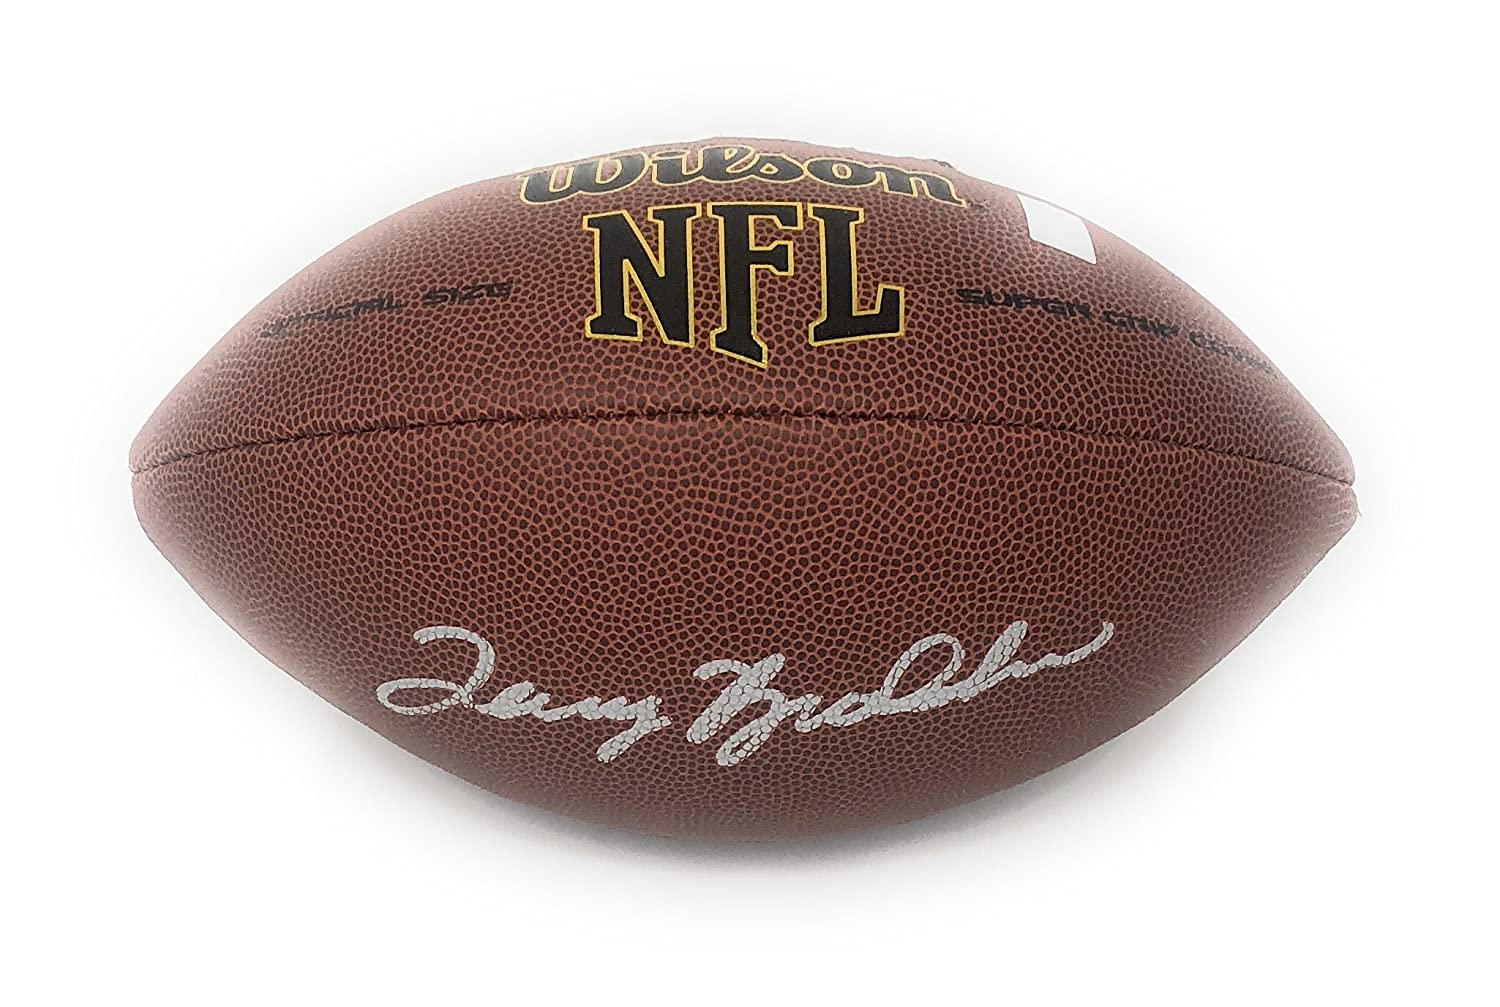 Terry Bradshaw Pittsburgh Steelers Signed Autograph NFL Football Bradshaw GTSM Player Hologram